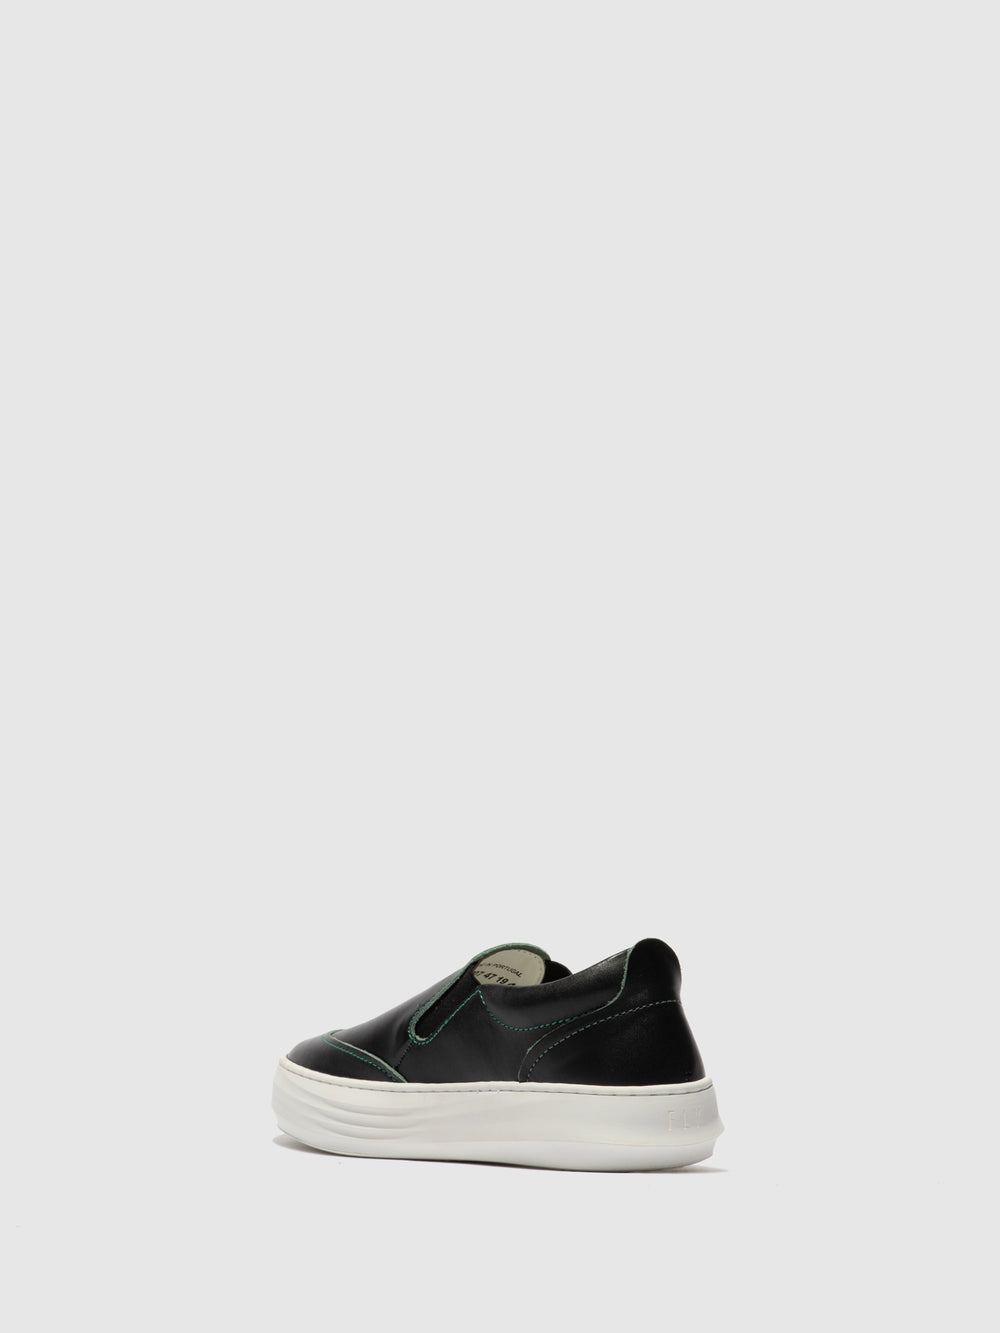 Slip-on Trainers CEZI423FLY BLACK/GREEN